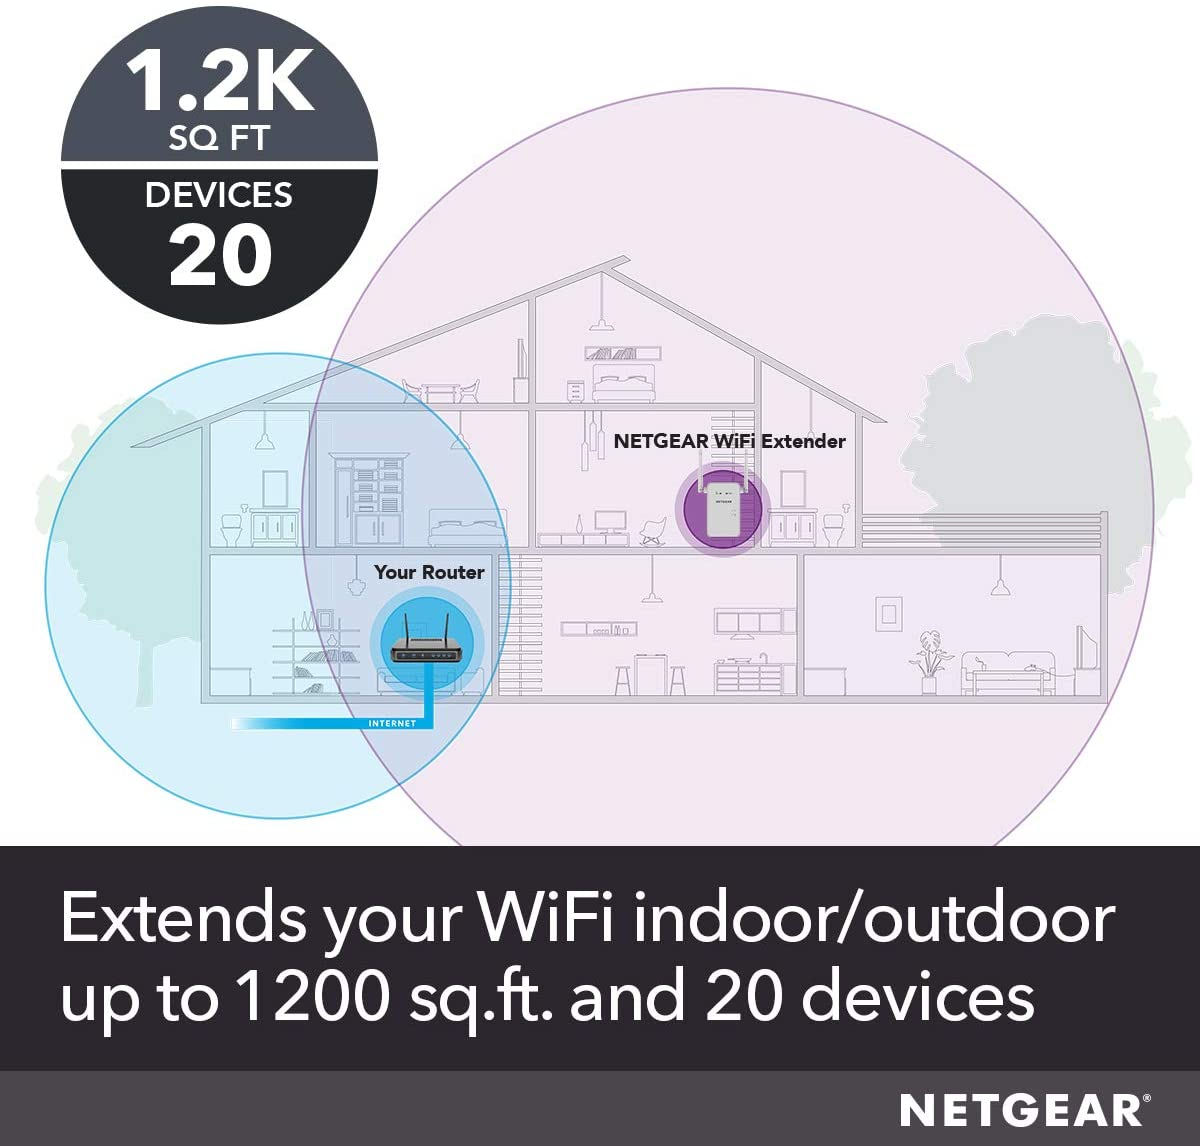 NETGEAR WiFi Mesh Range Extender EX6150 - Coverage up to 1200 sq. ft. and 20 Devices with AC1200 Dual Band Wireless Signal Booster & Repeater (up to 1200Mbps Speed), Plus Mesh Smart Roaming: Computers & Accessories